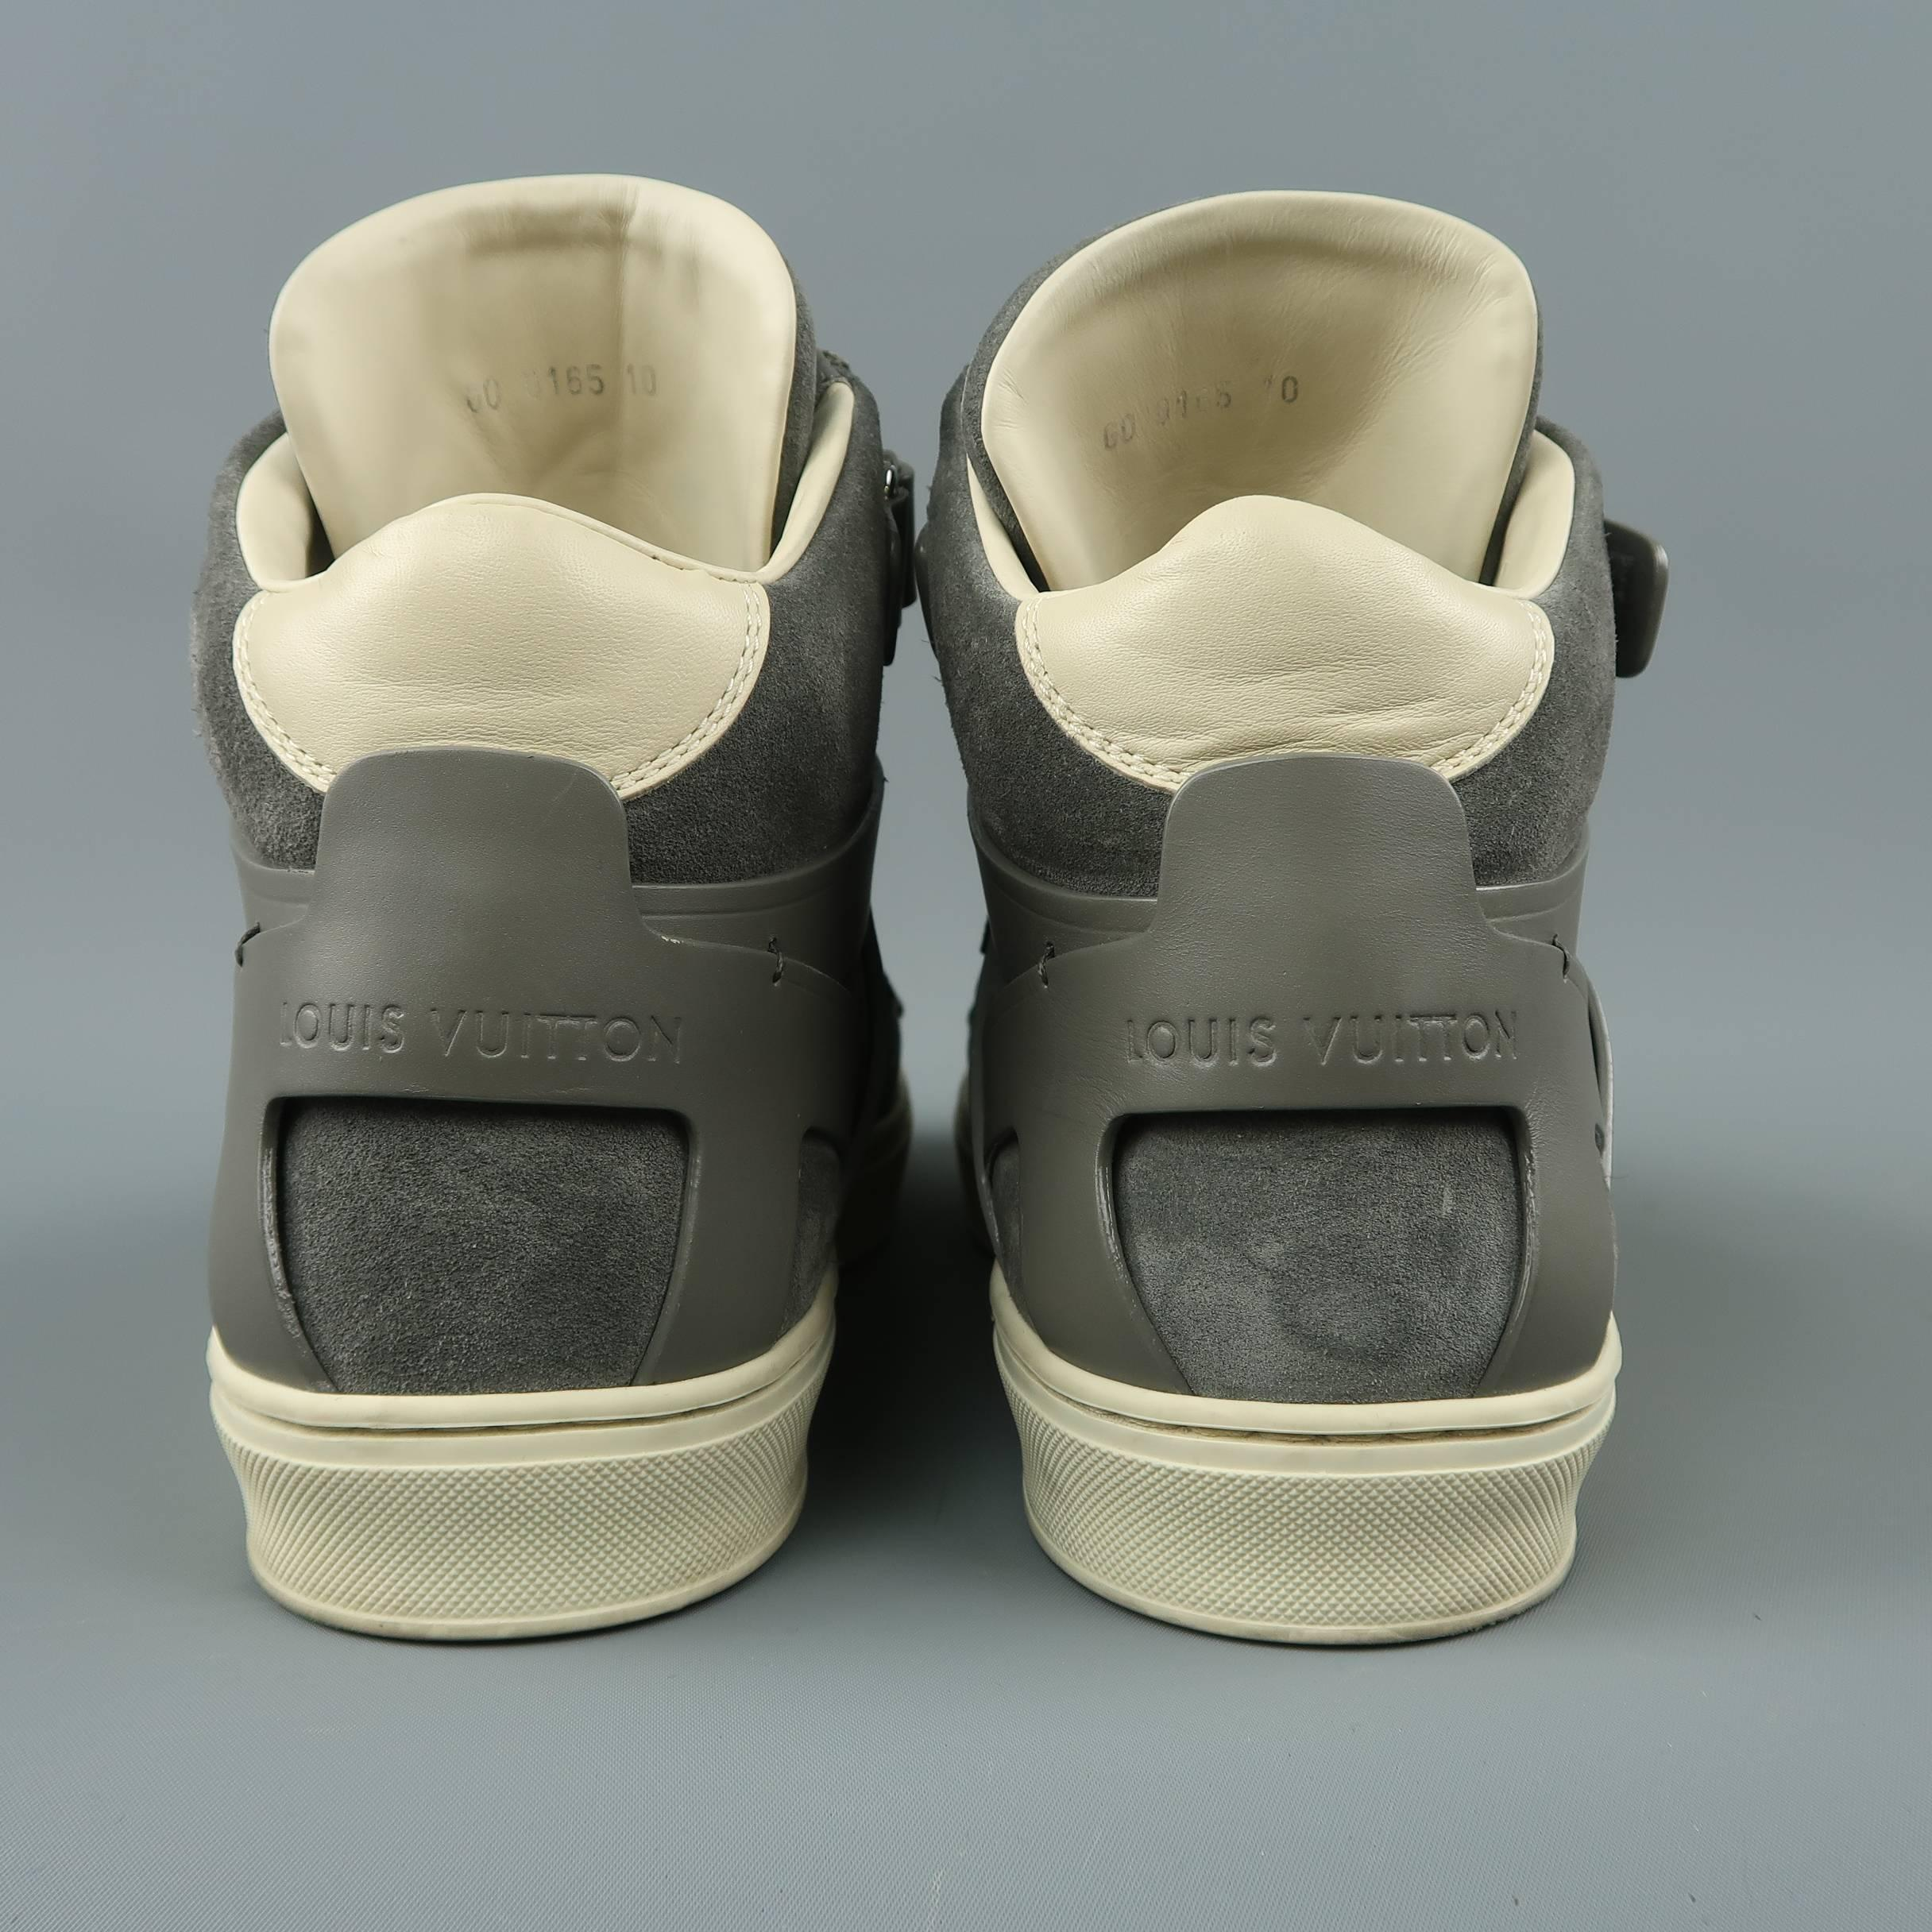 0066fd495f1d Men s LOUIS VUITTON Sneaker Size 11 Gray Leather and Suede Velcro High Top  Boxing at 1stdibs